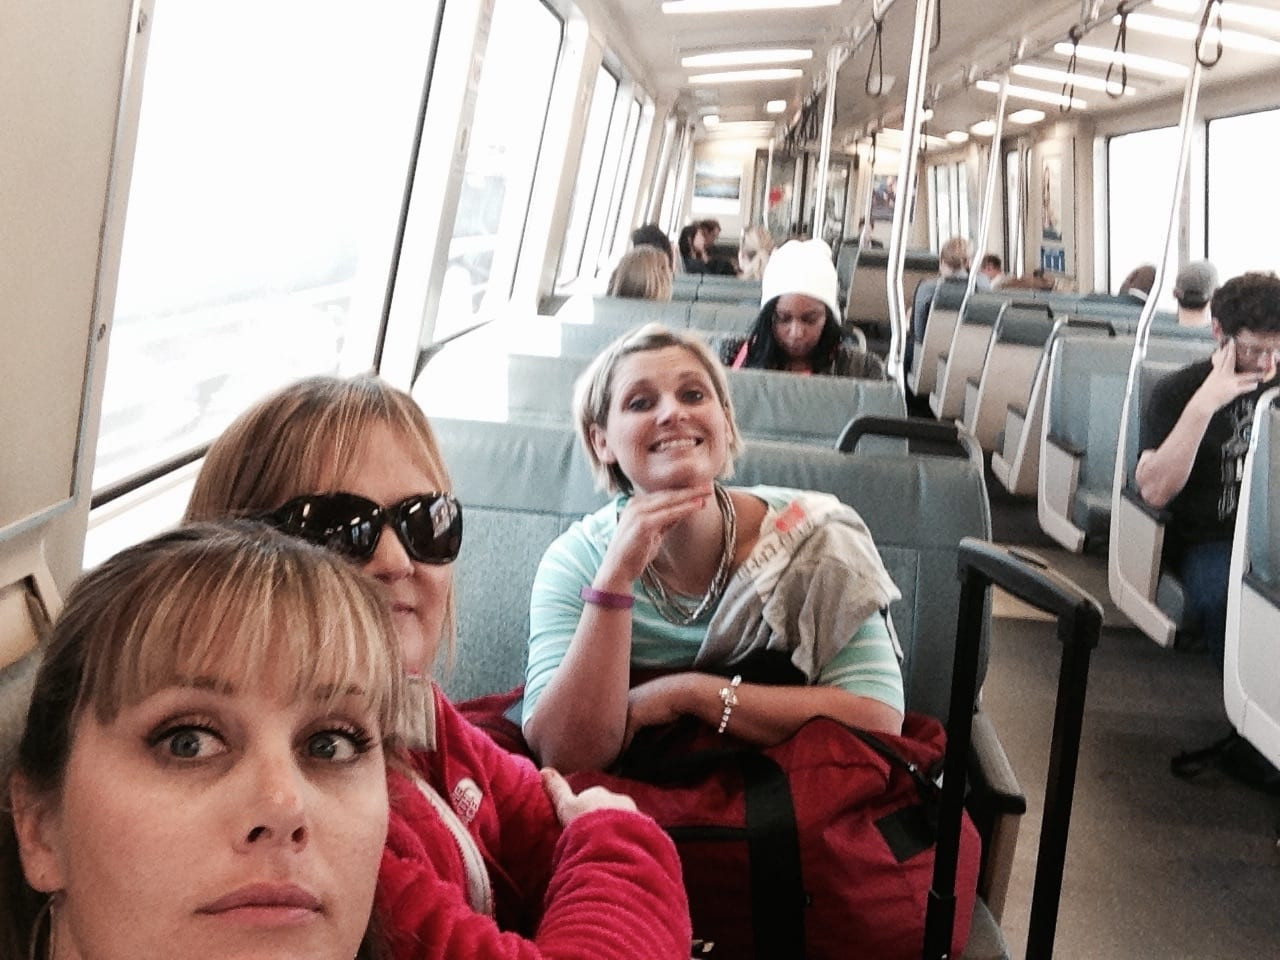 Riding the Bart in San Francisco